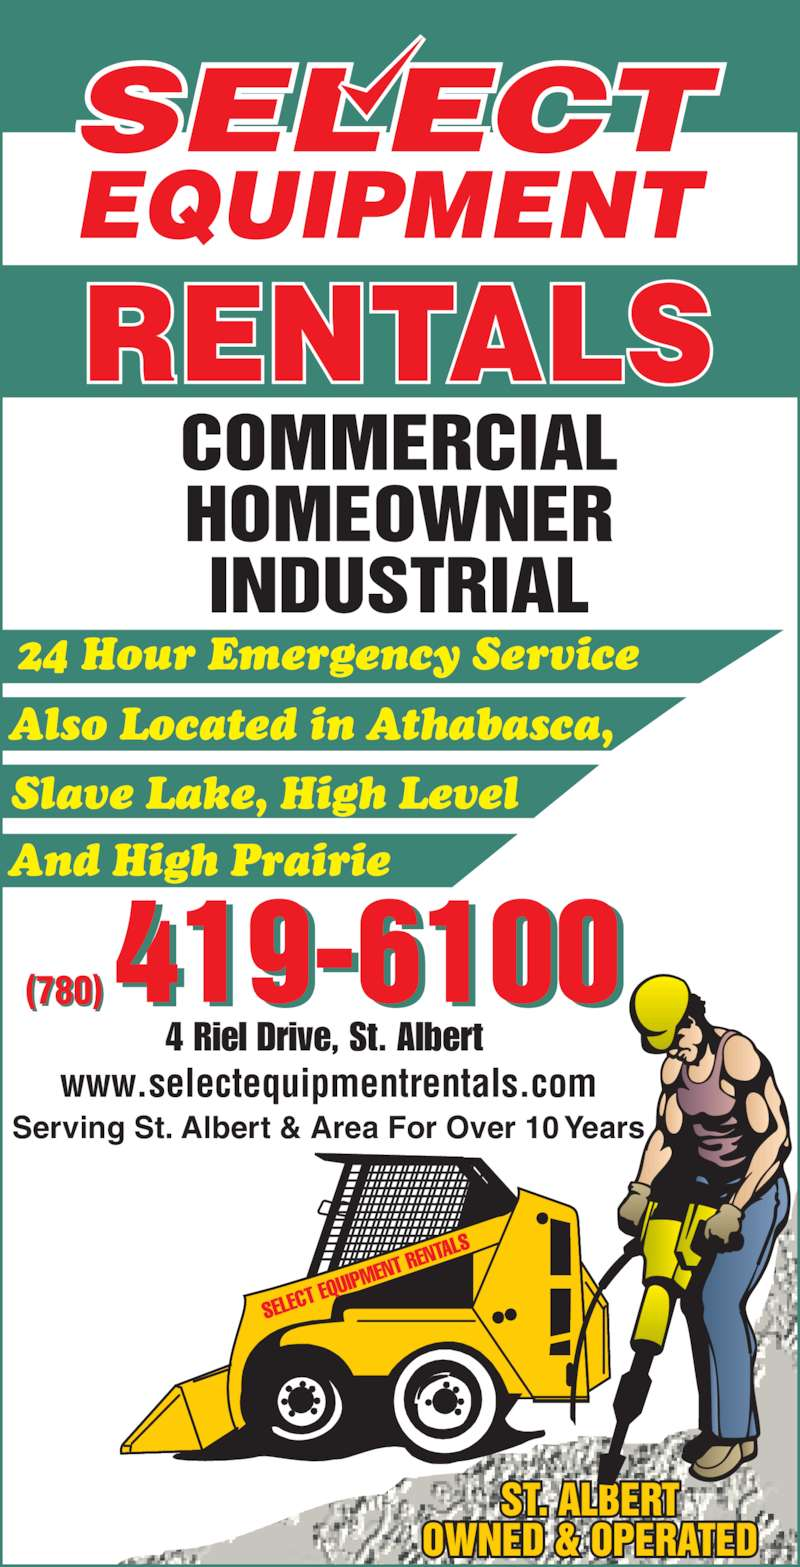 Select Equipment Rentals (780-419-6100) - Display Ad - And High Prairie Slave Lake, High Level 24 Hour Emergency Service www.selectequipmentrentals.com Serving St. Albert & Area For Over 10 Years 4 Riel Drive, St. Albert (780) Also Located in Athabasca,